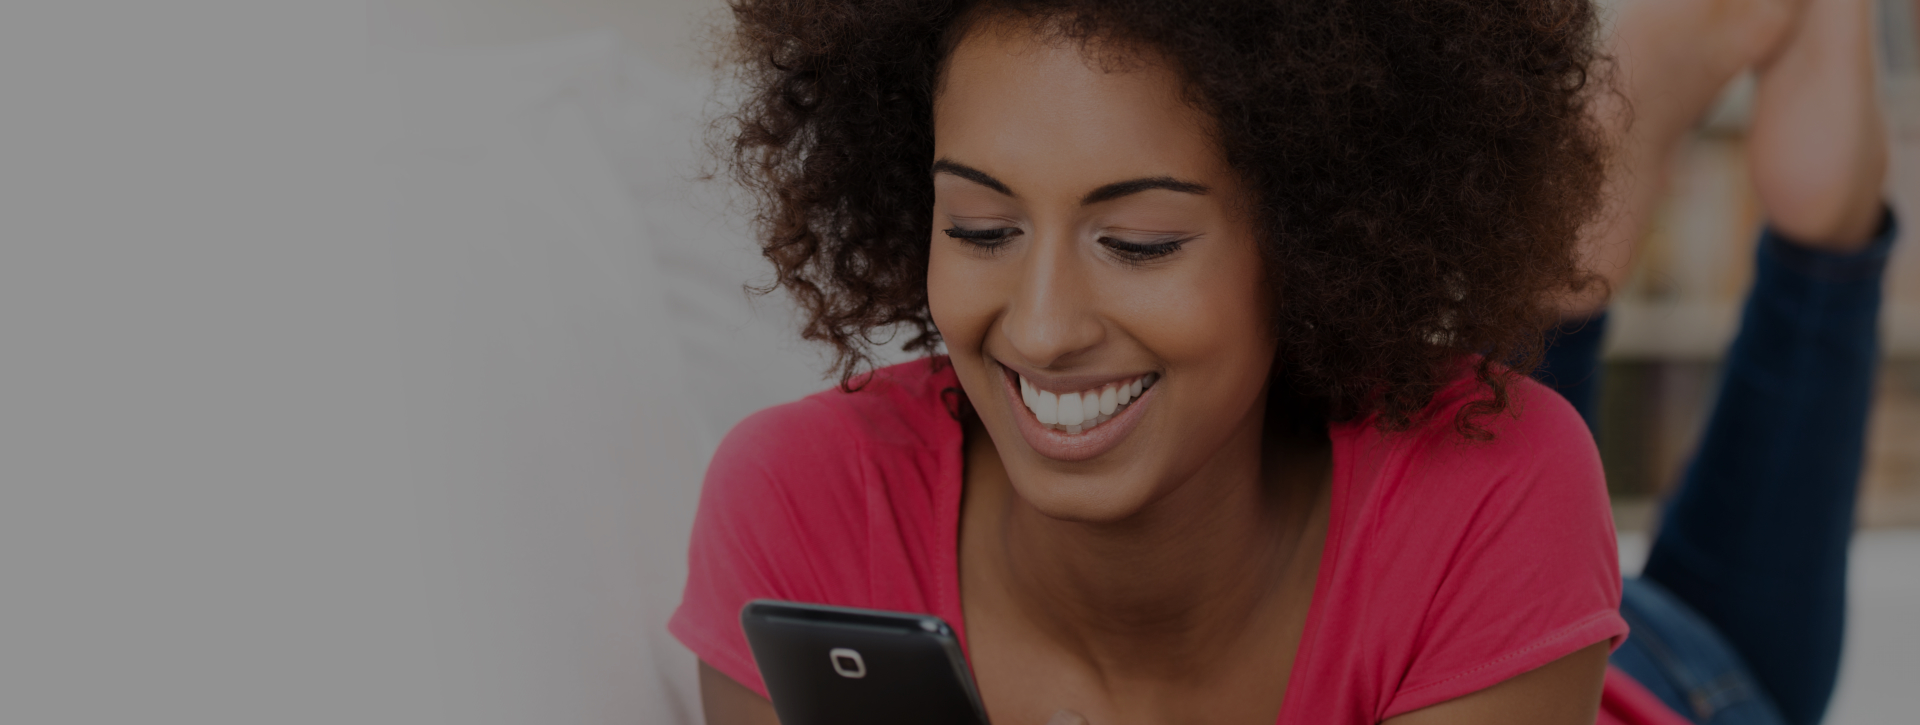 woman smiling while texting